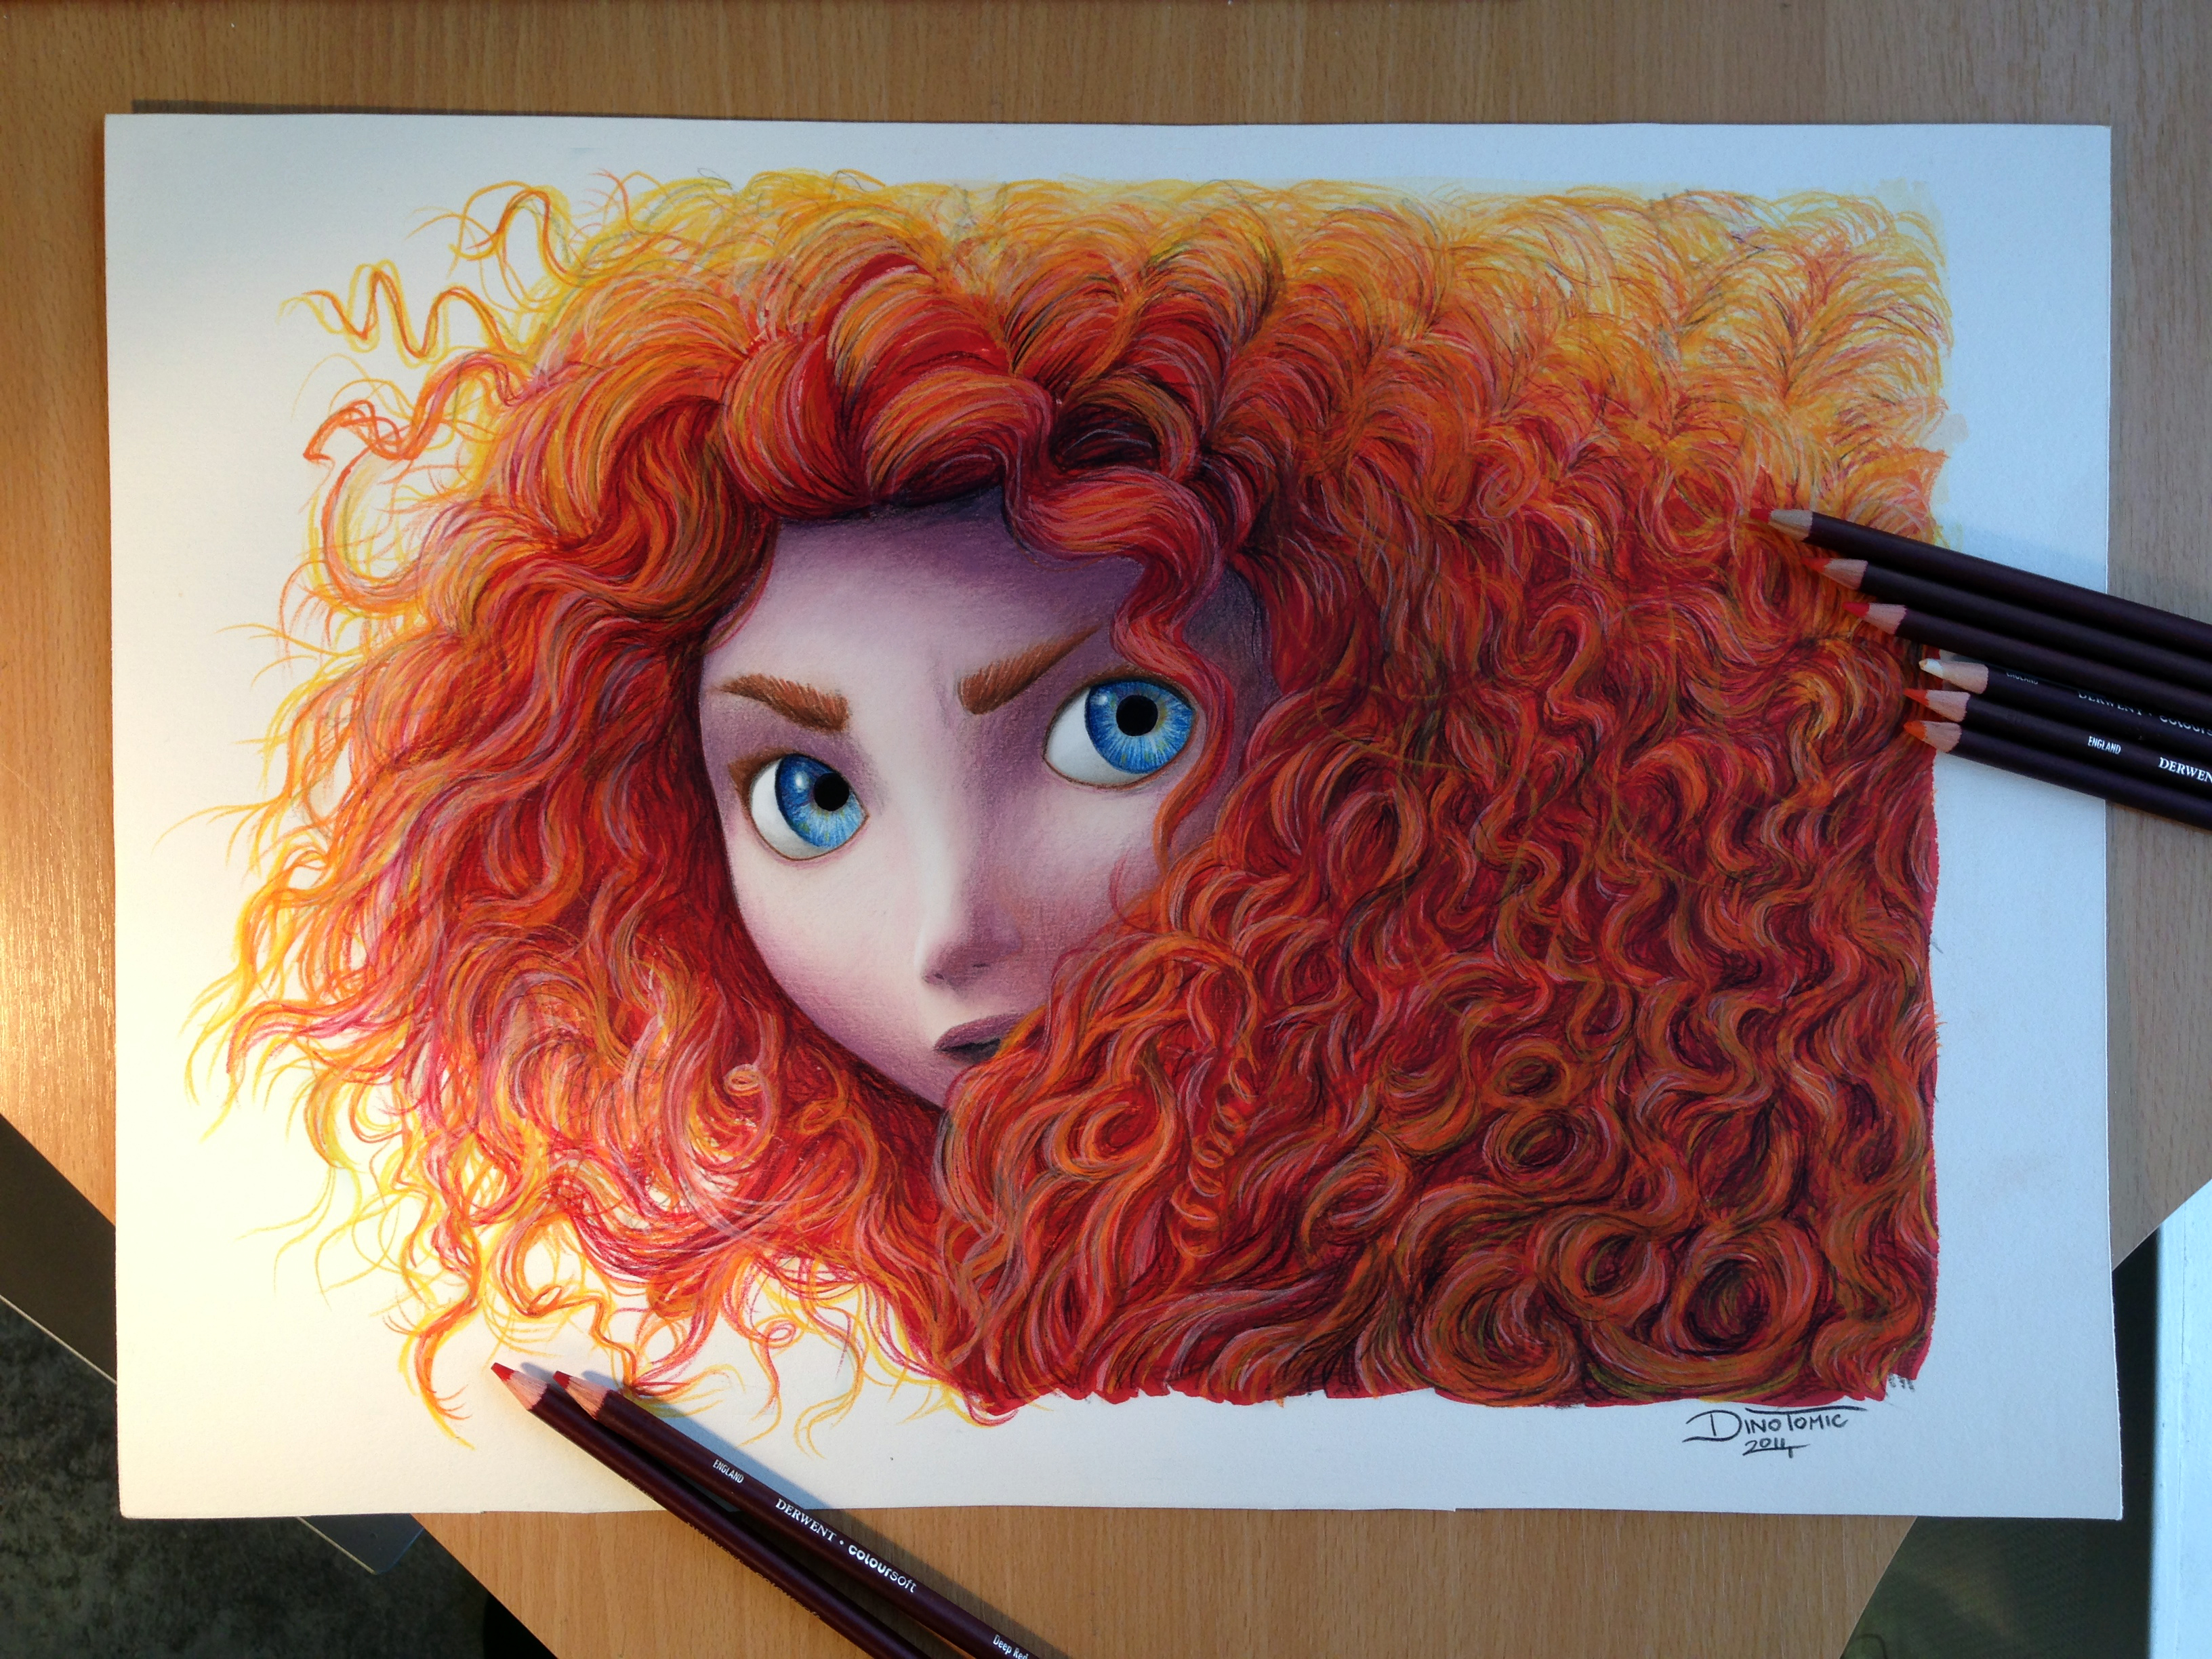 How to draw with colored pencils - Merida Color Pencil Drawing By Atomiccircus Merida Color Pencil Drawing By Atomiccircus